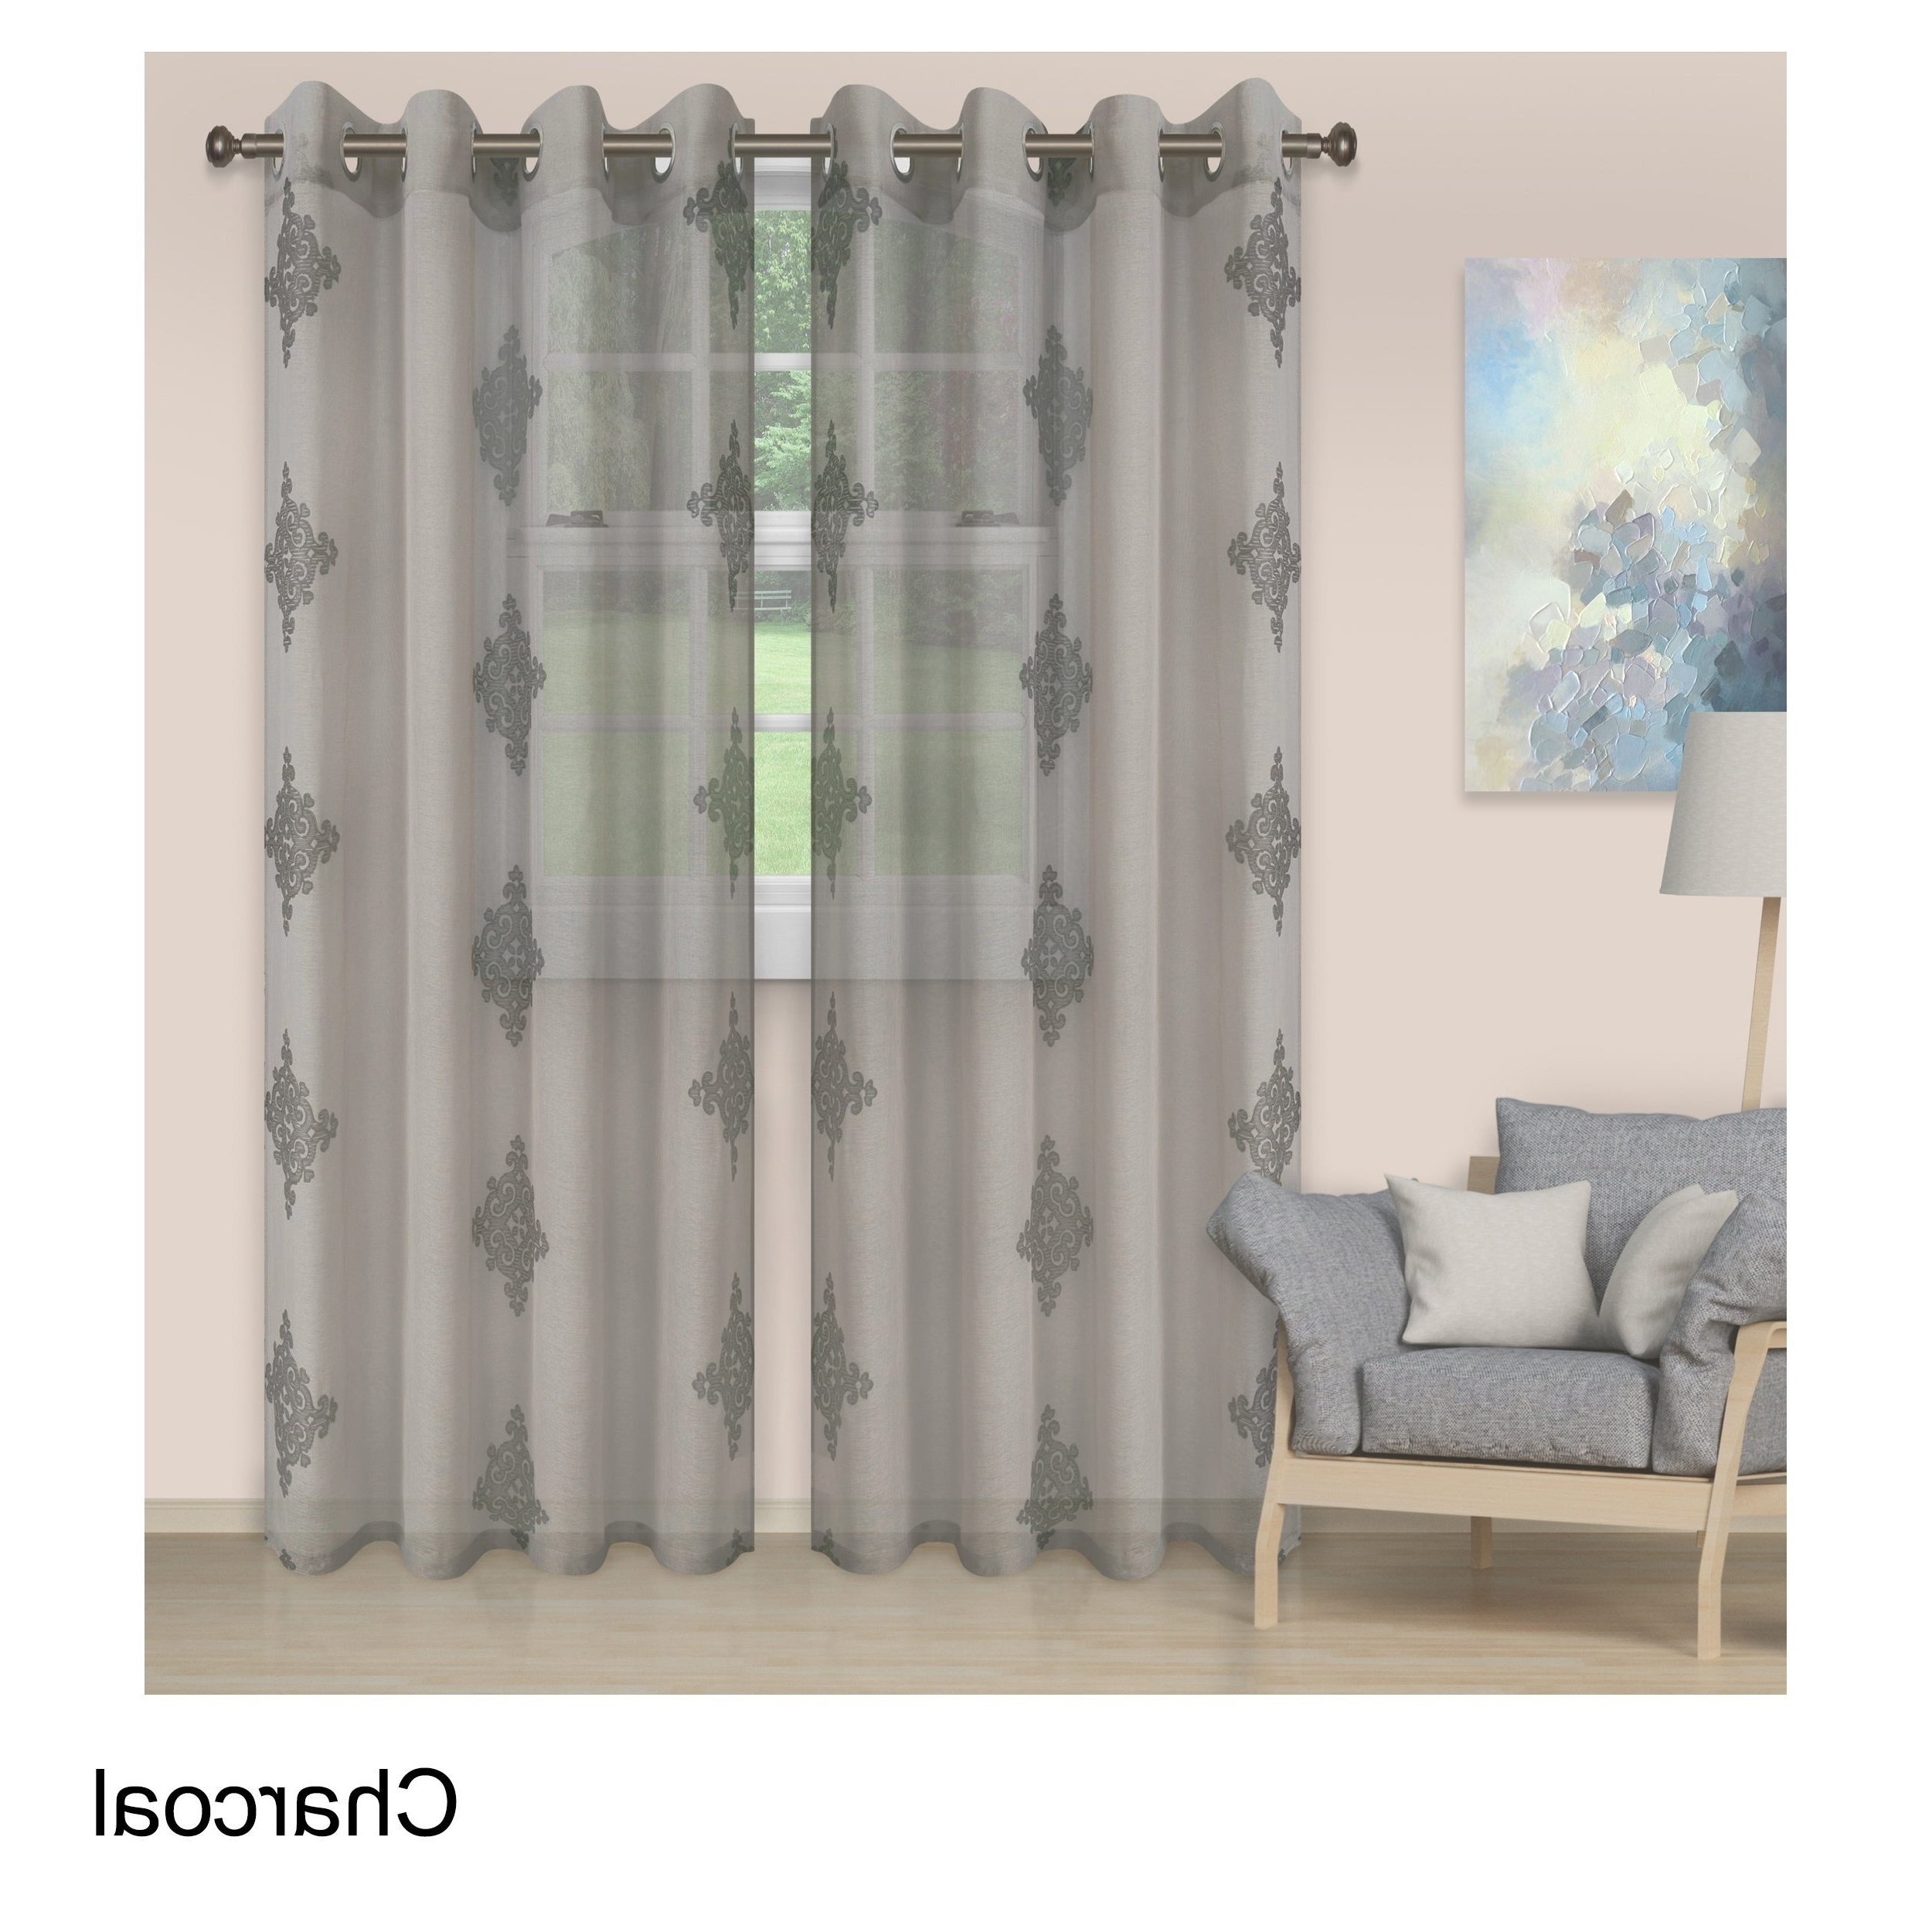 Newest Superior Embroidered Damask Sheer Grommet Curtain Panel Pair With Overseas Leaf Swirl Embroidered Curtain Panel Pairs (View 11 of 21)